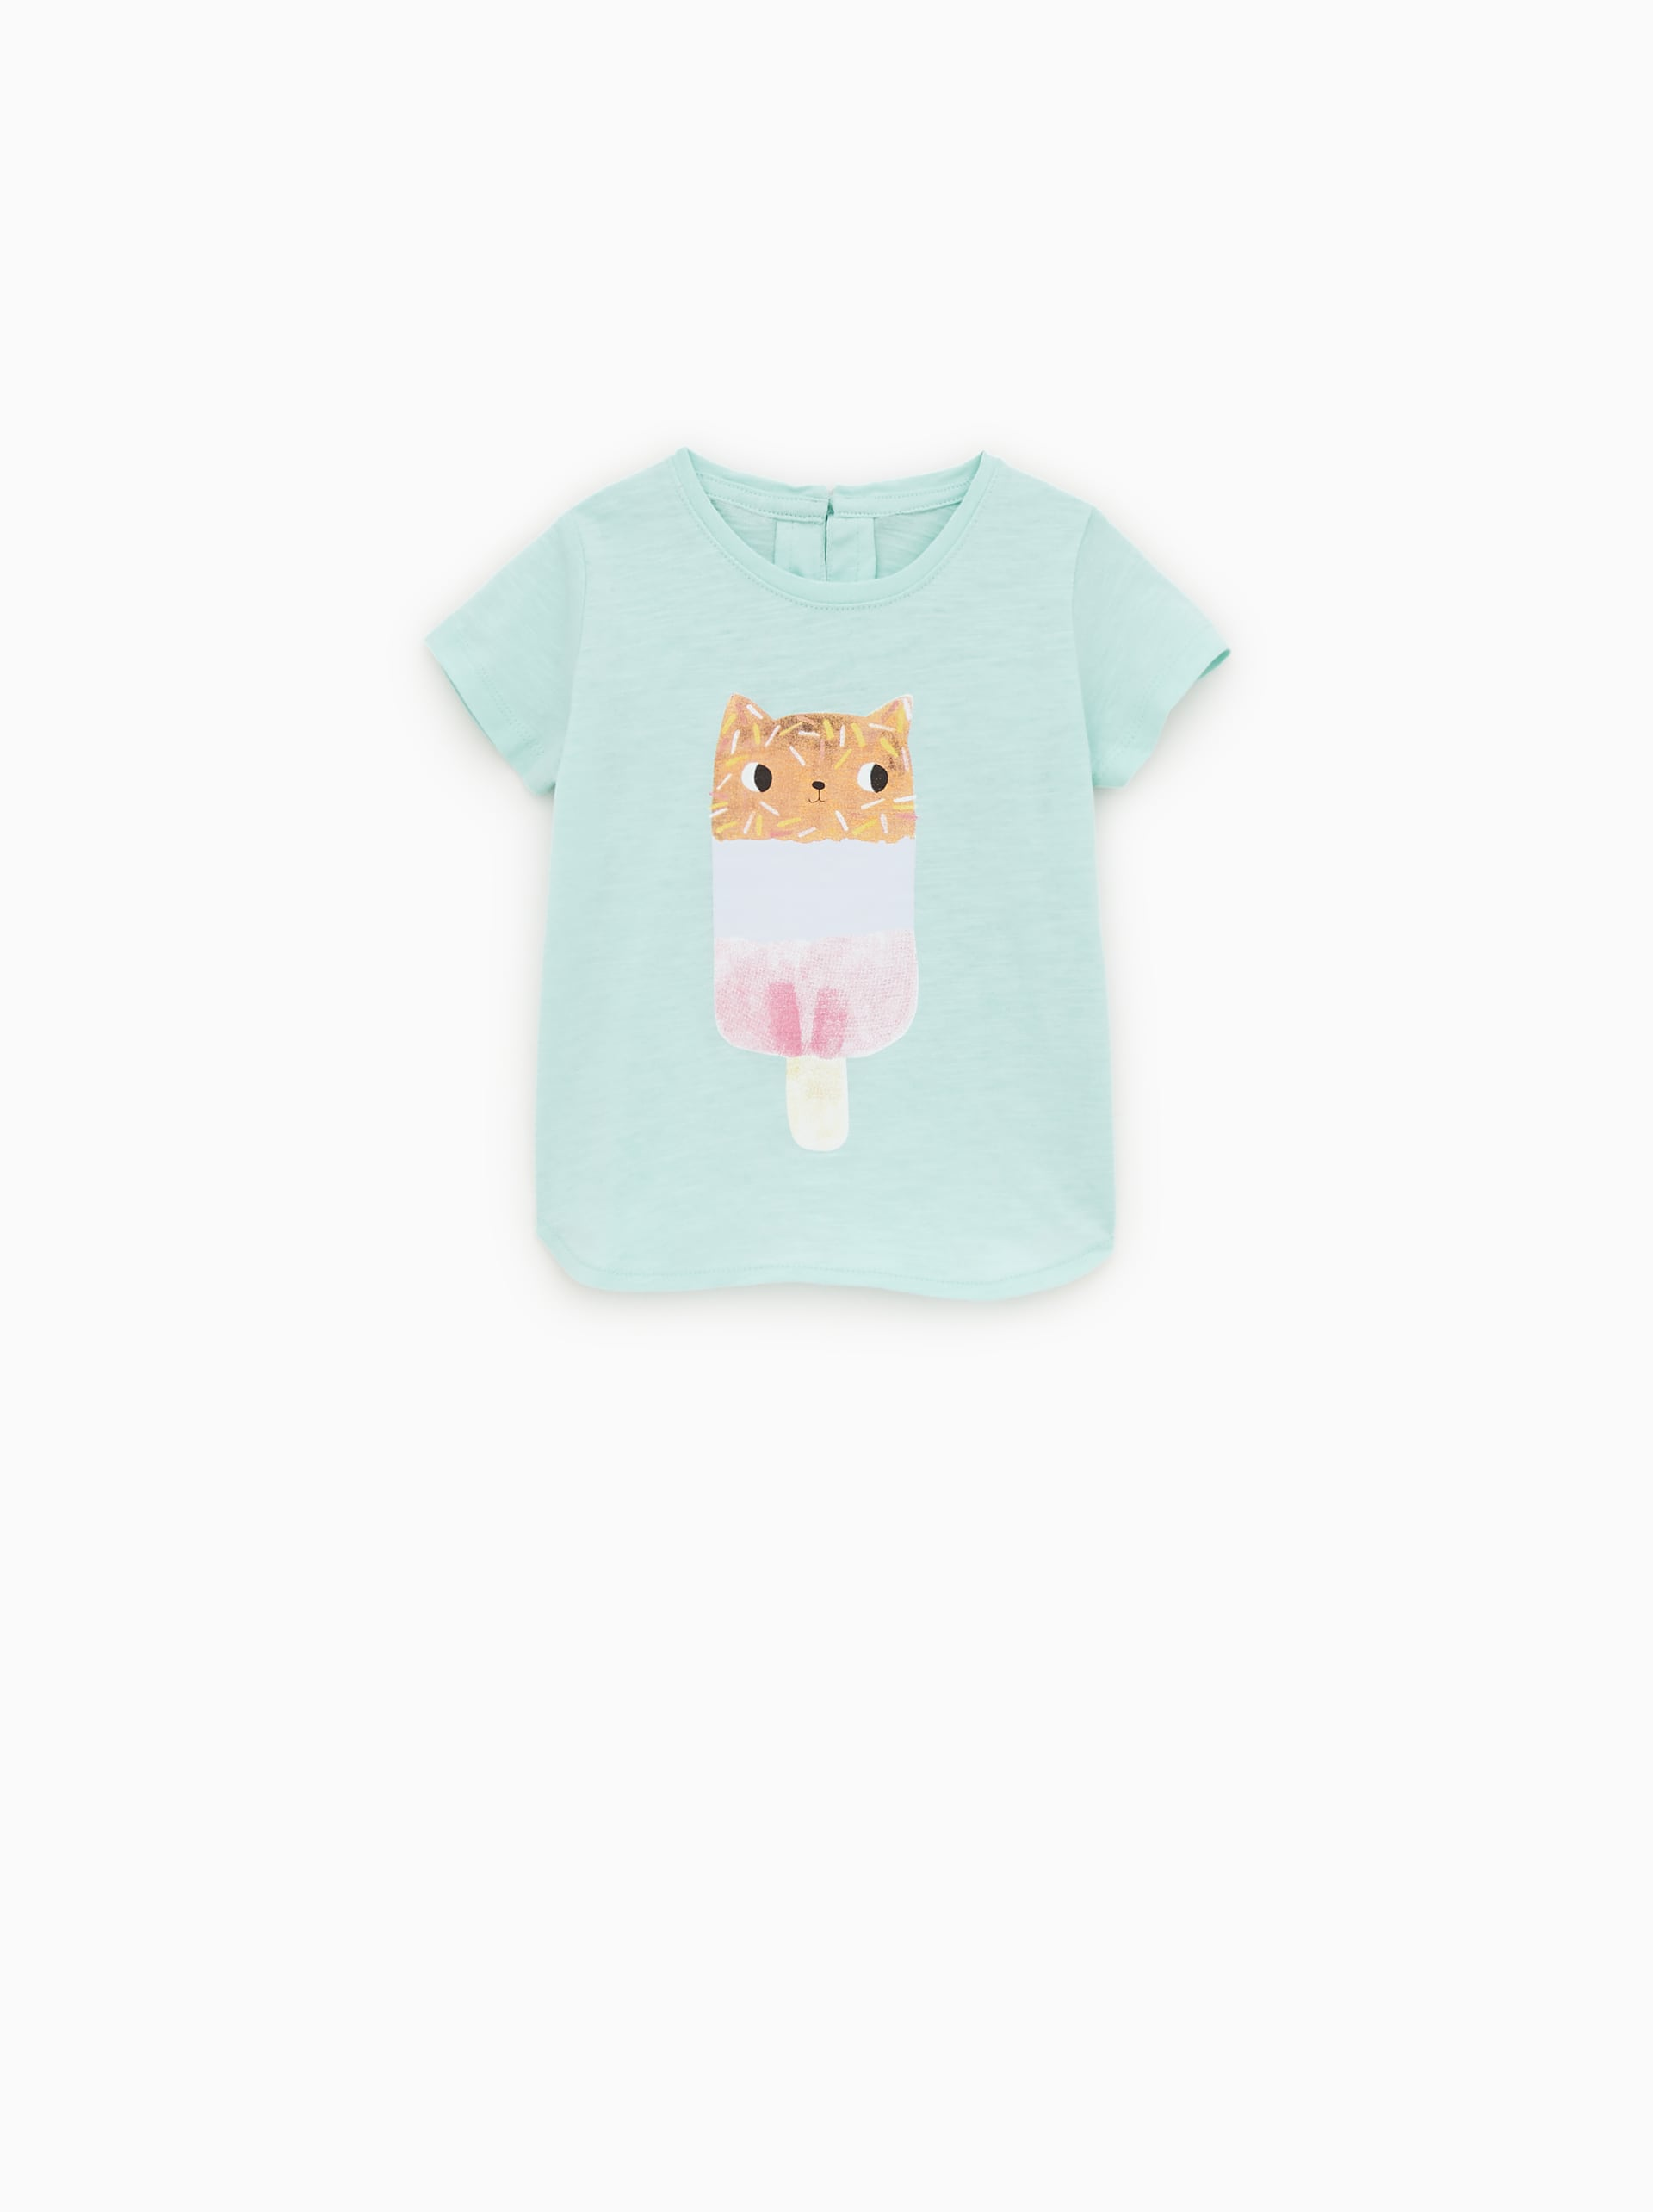 ecfc55d1 CAT PRINT T - SHIRT-FLUORS-SHOP BY COLLECTION-BABY GIRL | 3 mth - 5 ...